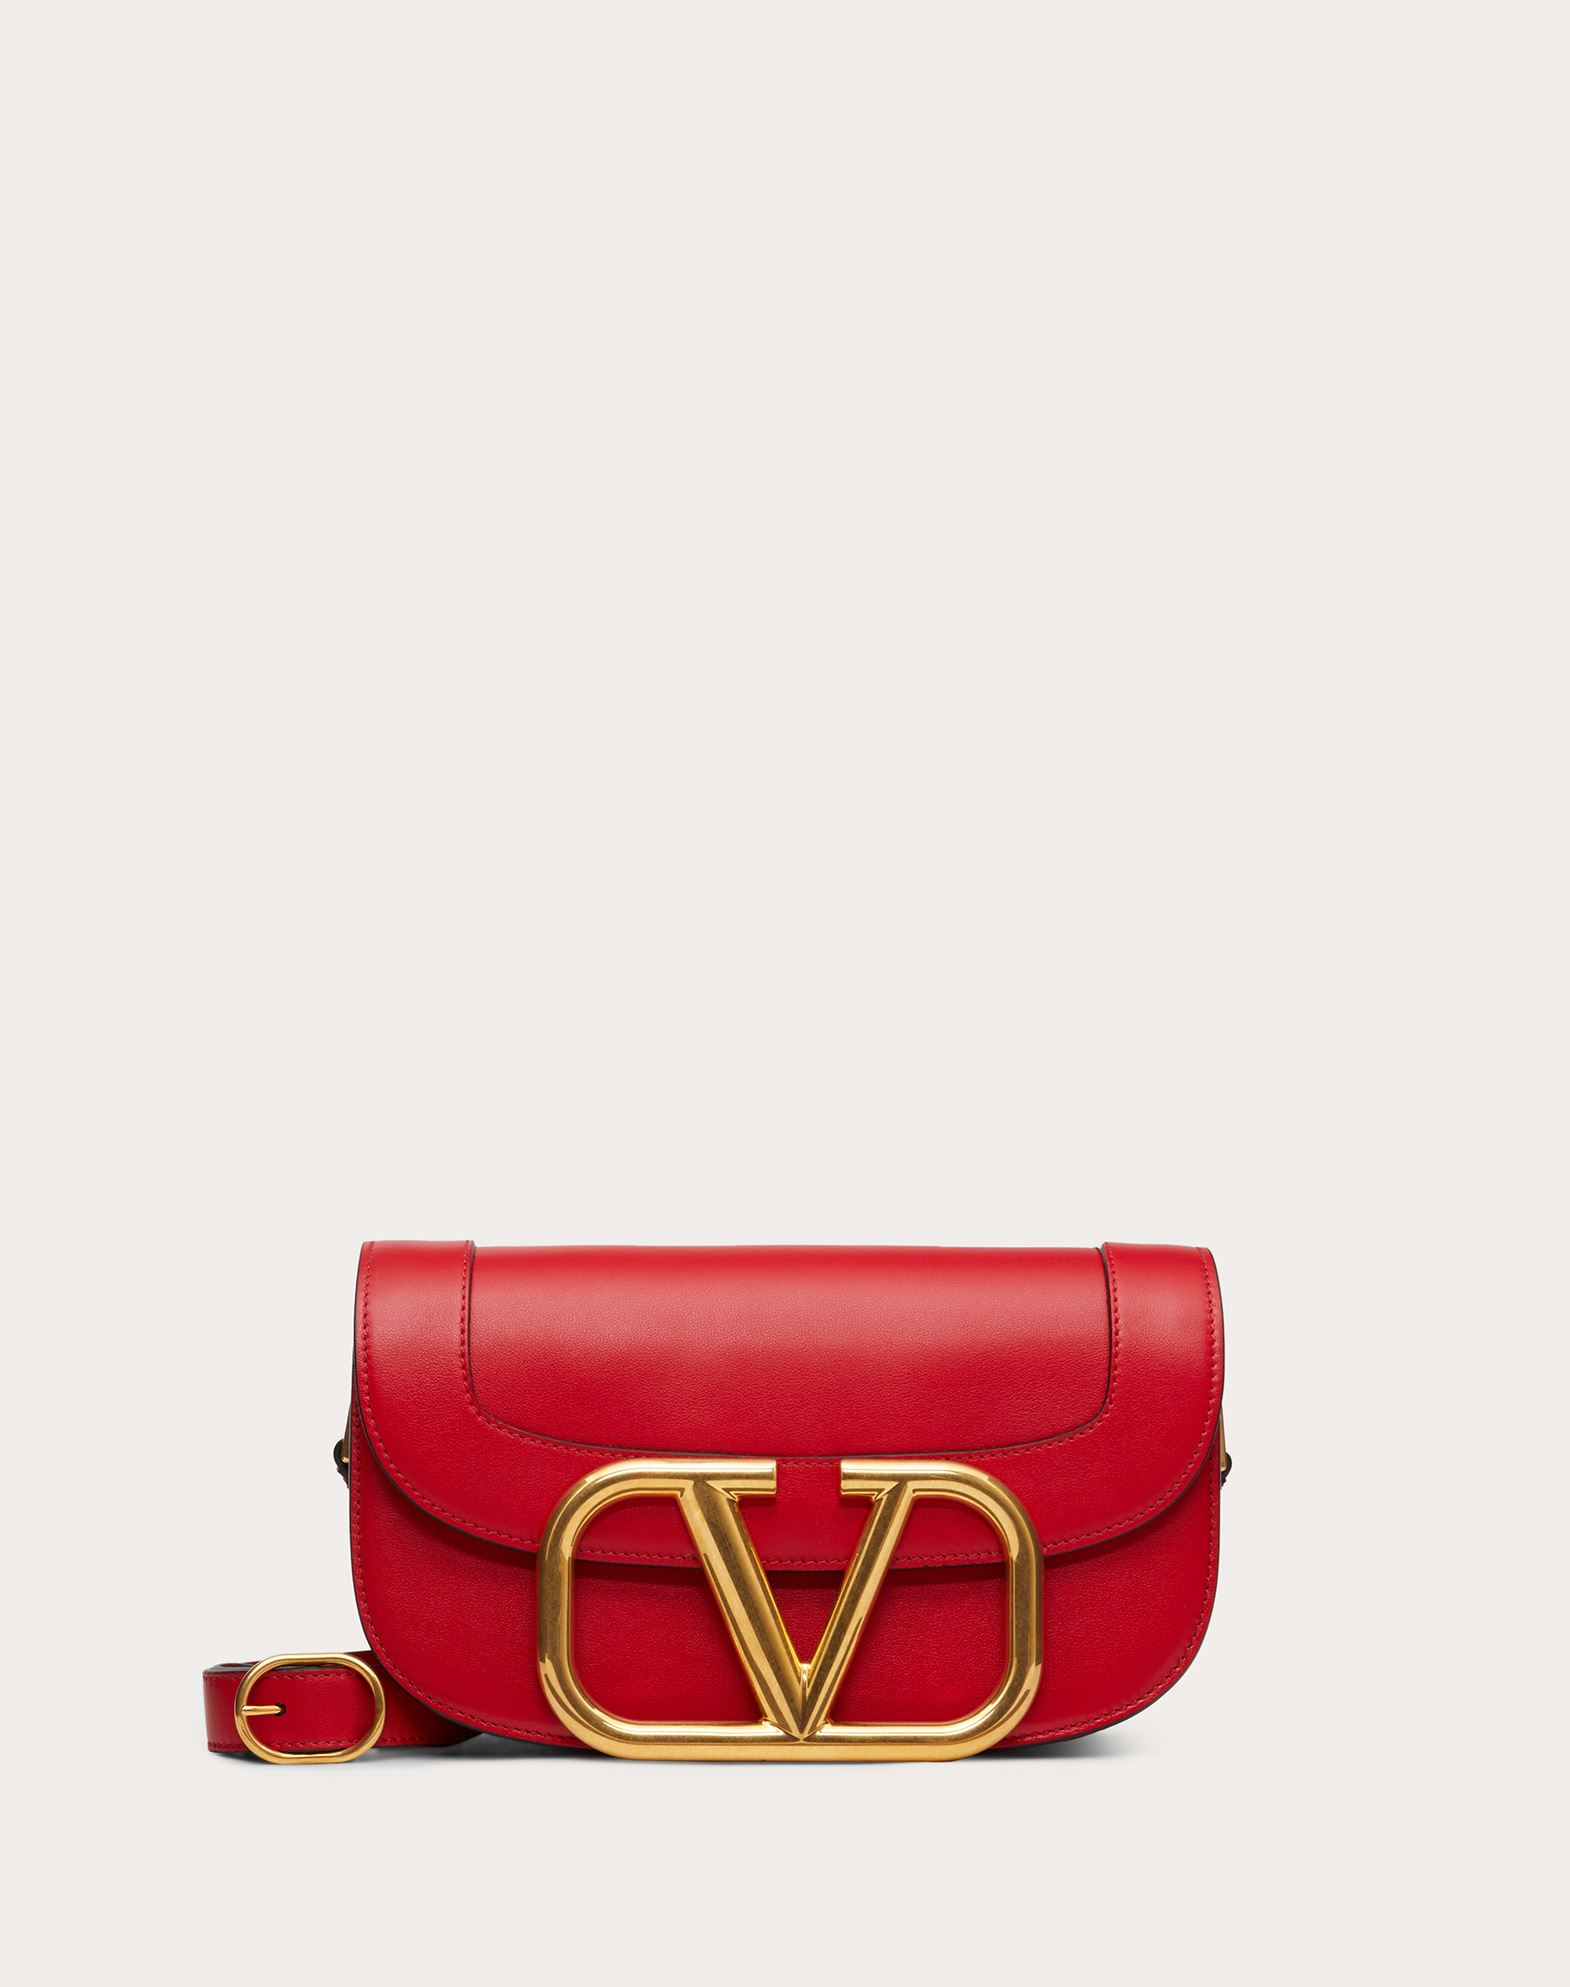 Supervee Calfskin Crossbody Bag